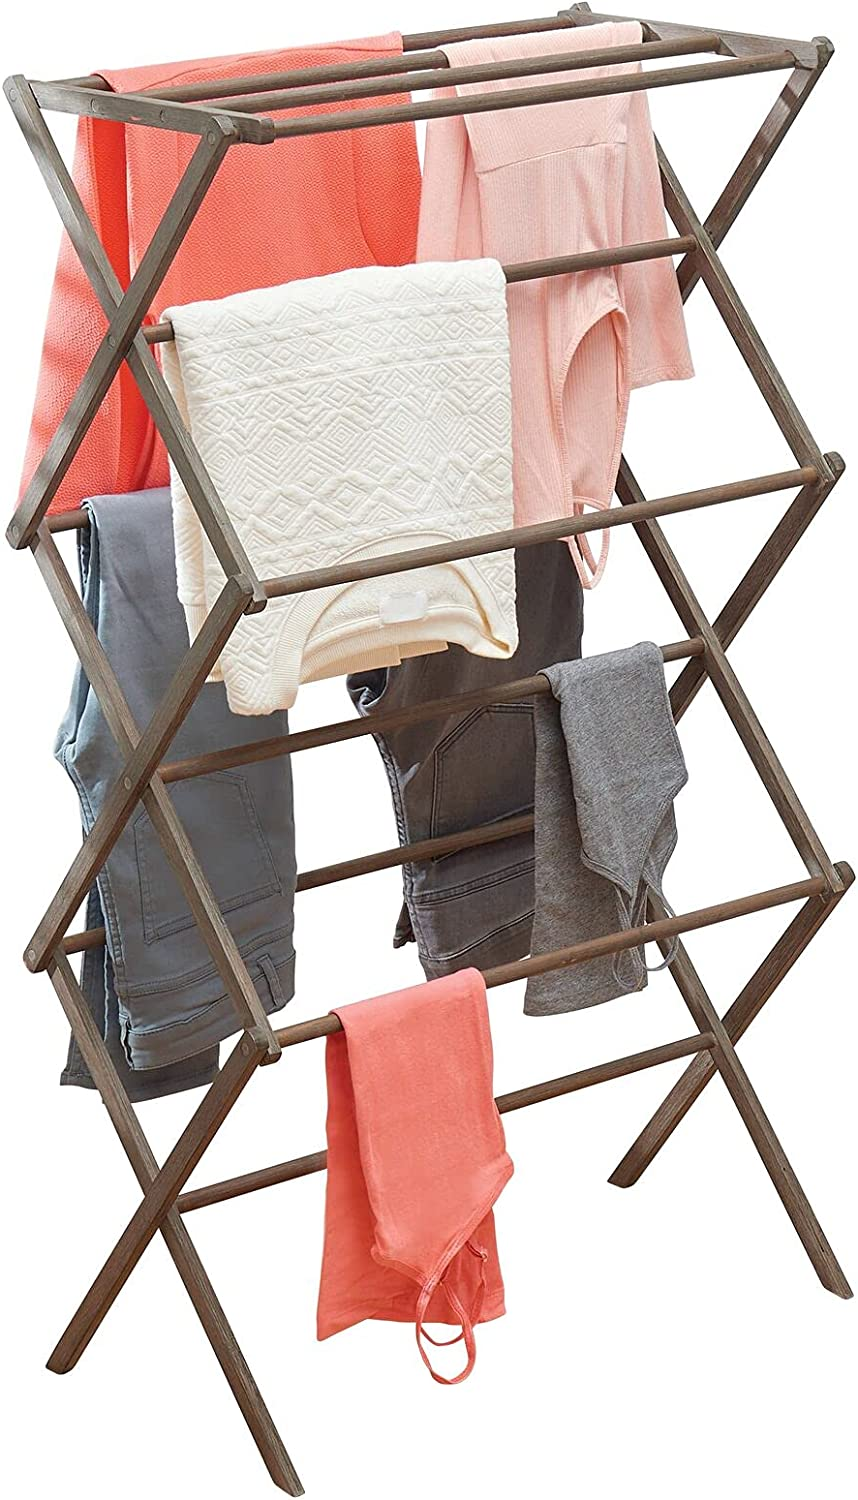 mDesign New product Tall Vertical Foldable Bamboo Sales of SALE items from new works Rack Drying Laundry Comp -